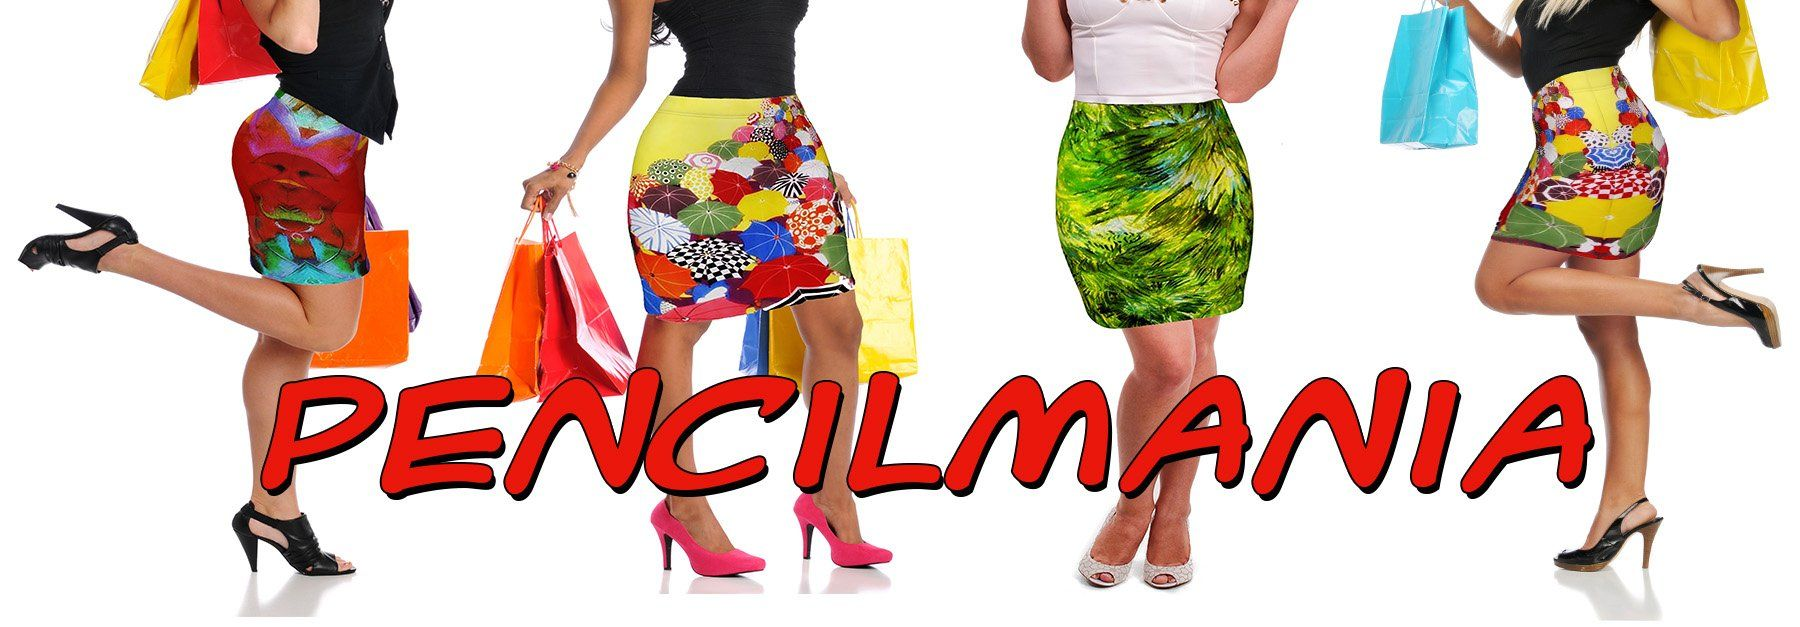 Pencilmania Surprise Fitted Skirt $21 Each Month Subscription